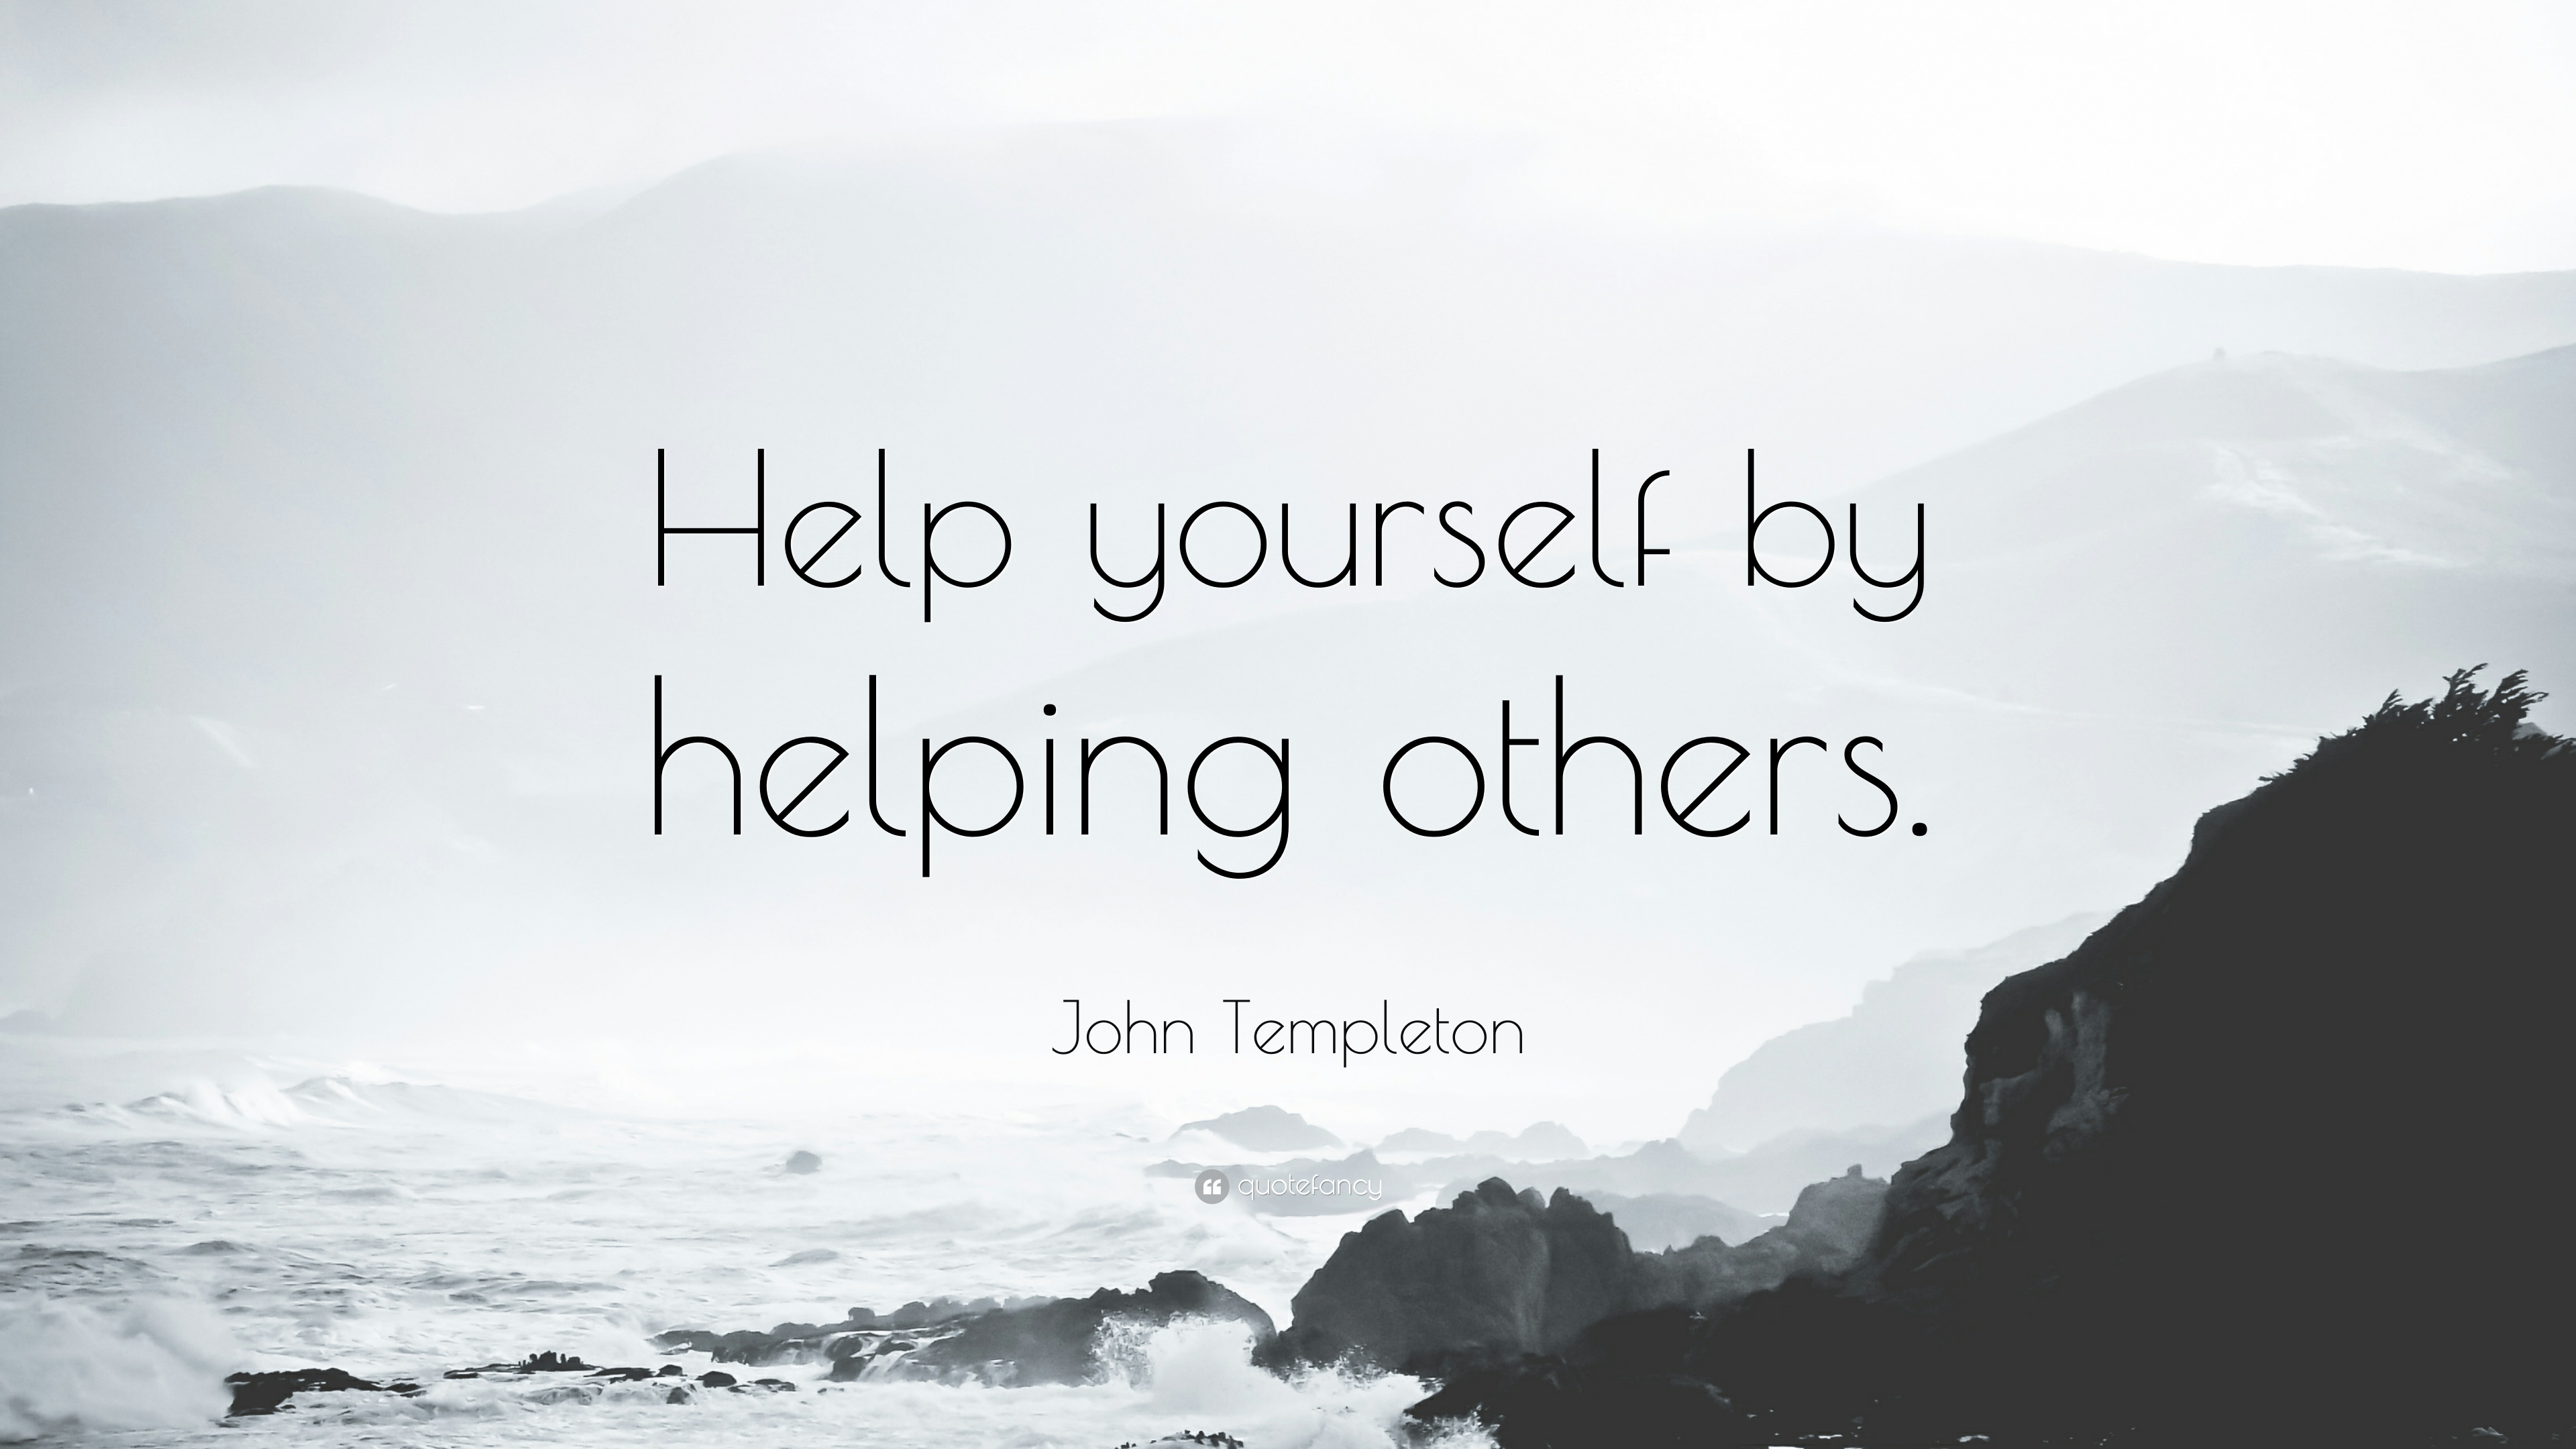 Quotes About Helping Helping Others Quotes 40 Wallpapers  Quotefancy